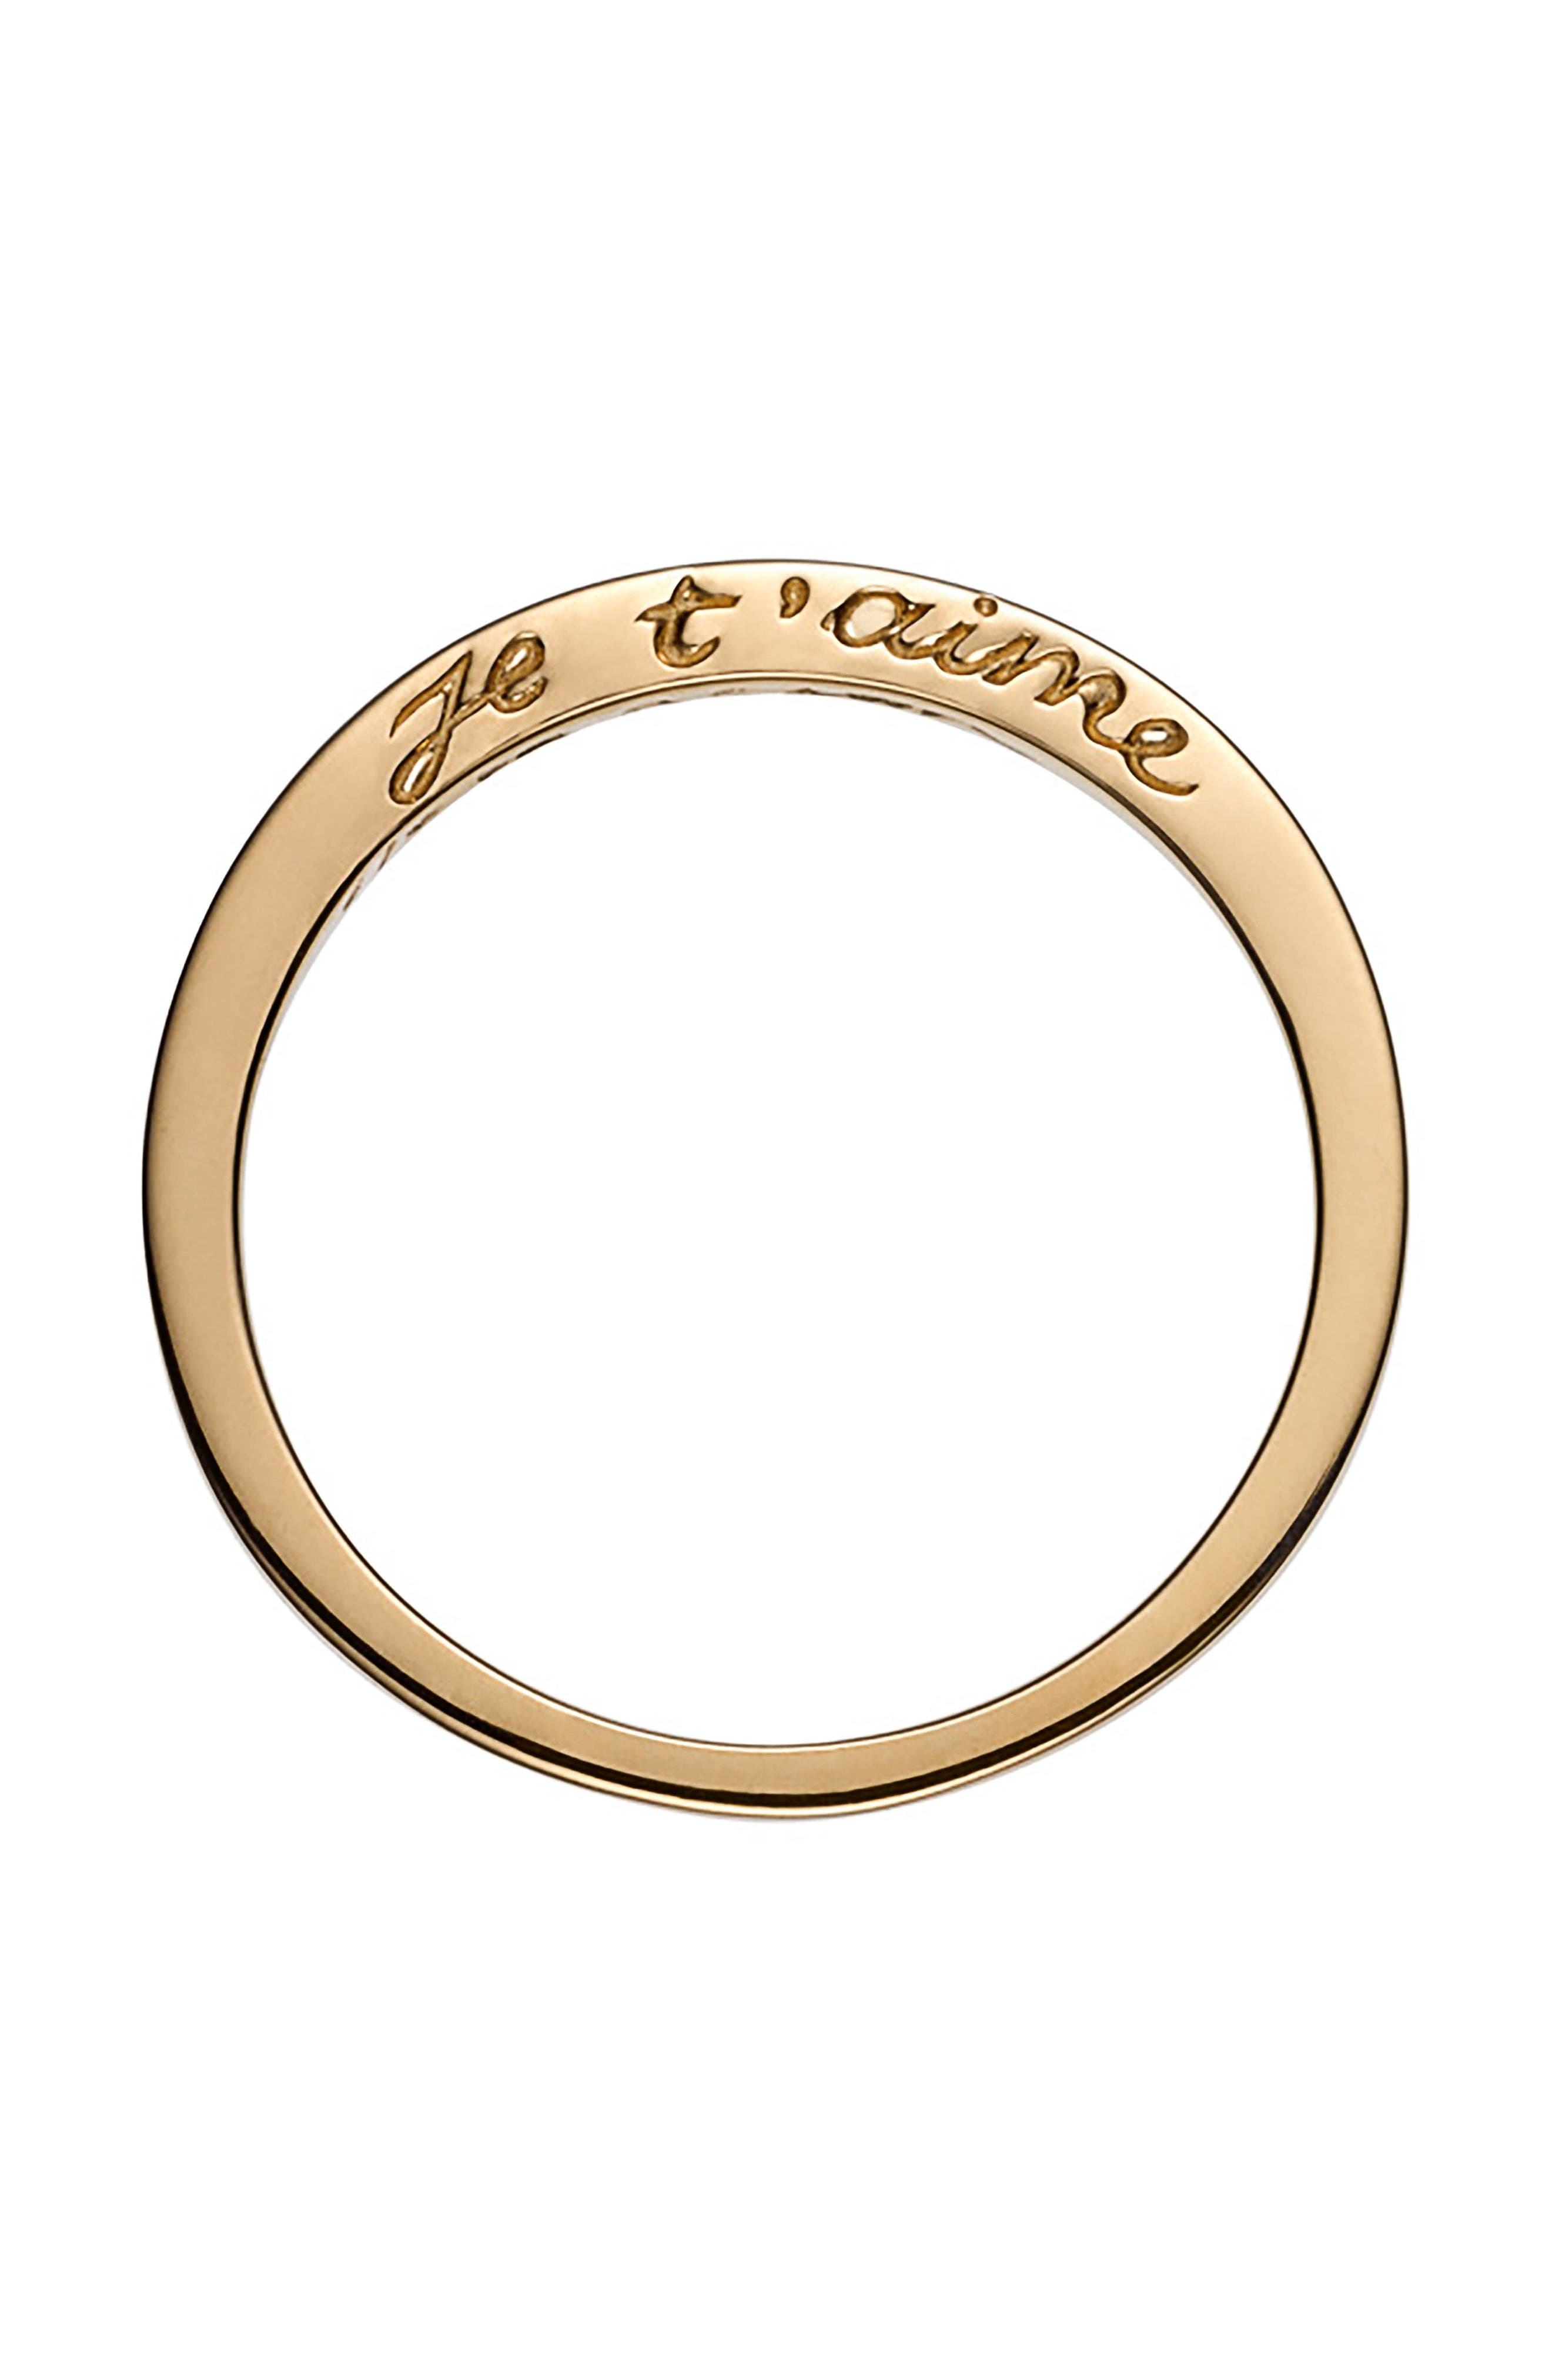 Je T'aime Side Script Stackable Ring,                             Main thumbnail 1, color,                             YELLOW GOLD